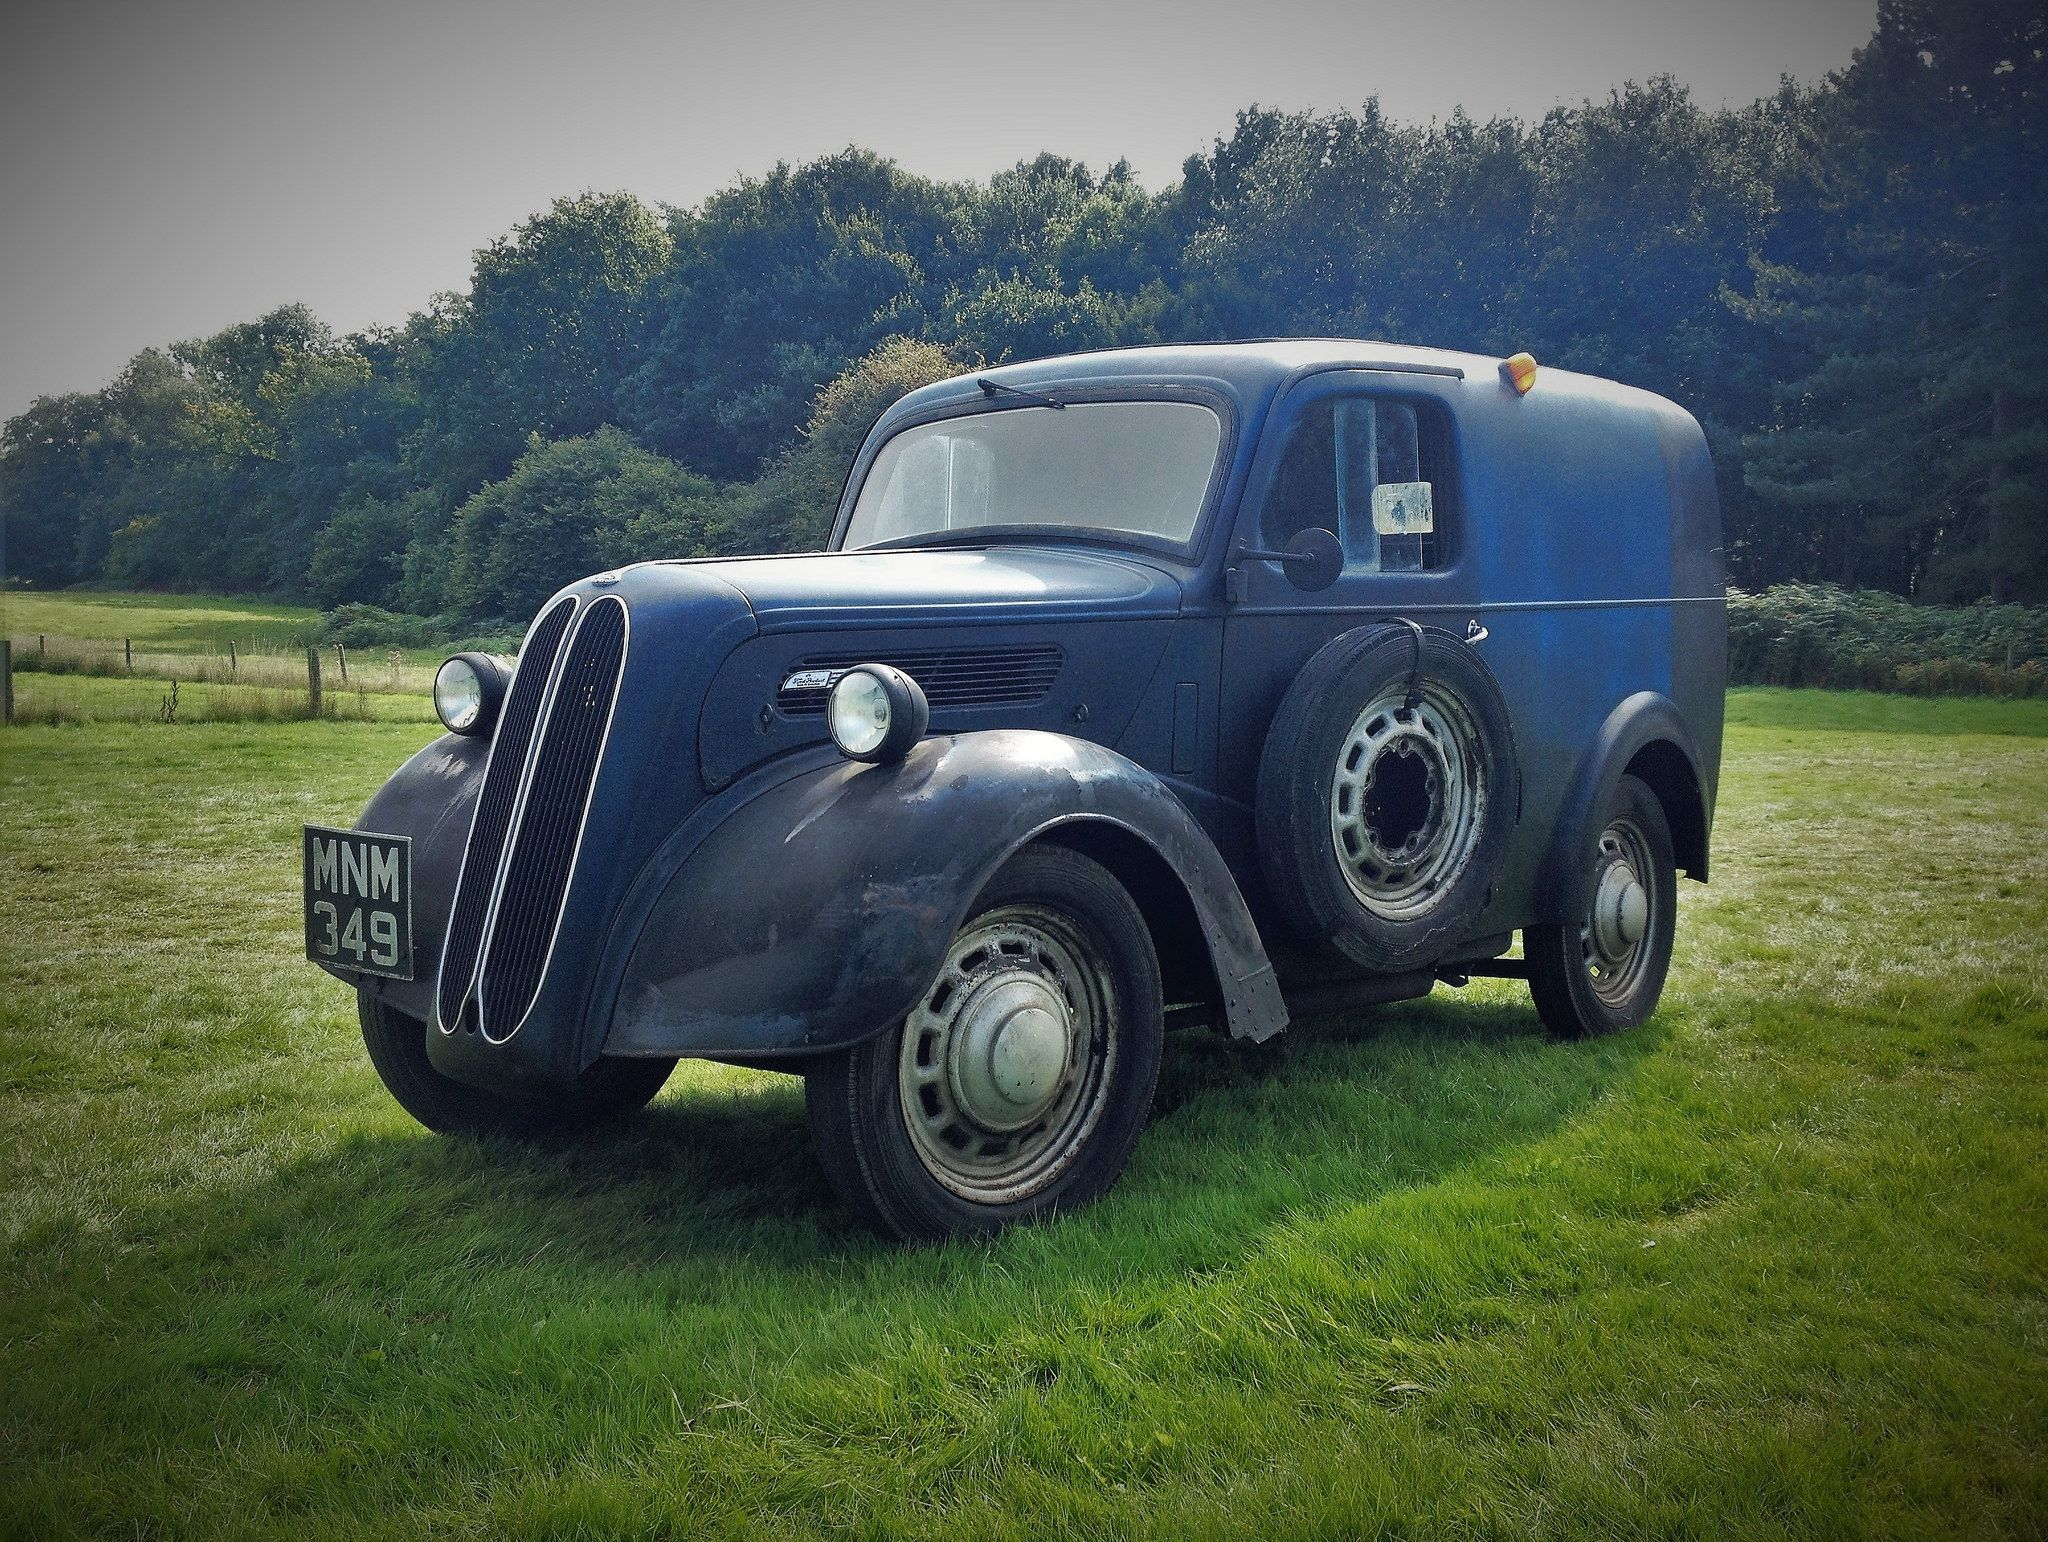 Ford / Fordson 5cwt Thames van - MNM349 | Vehicle, Custom cars and ...